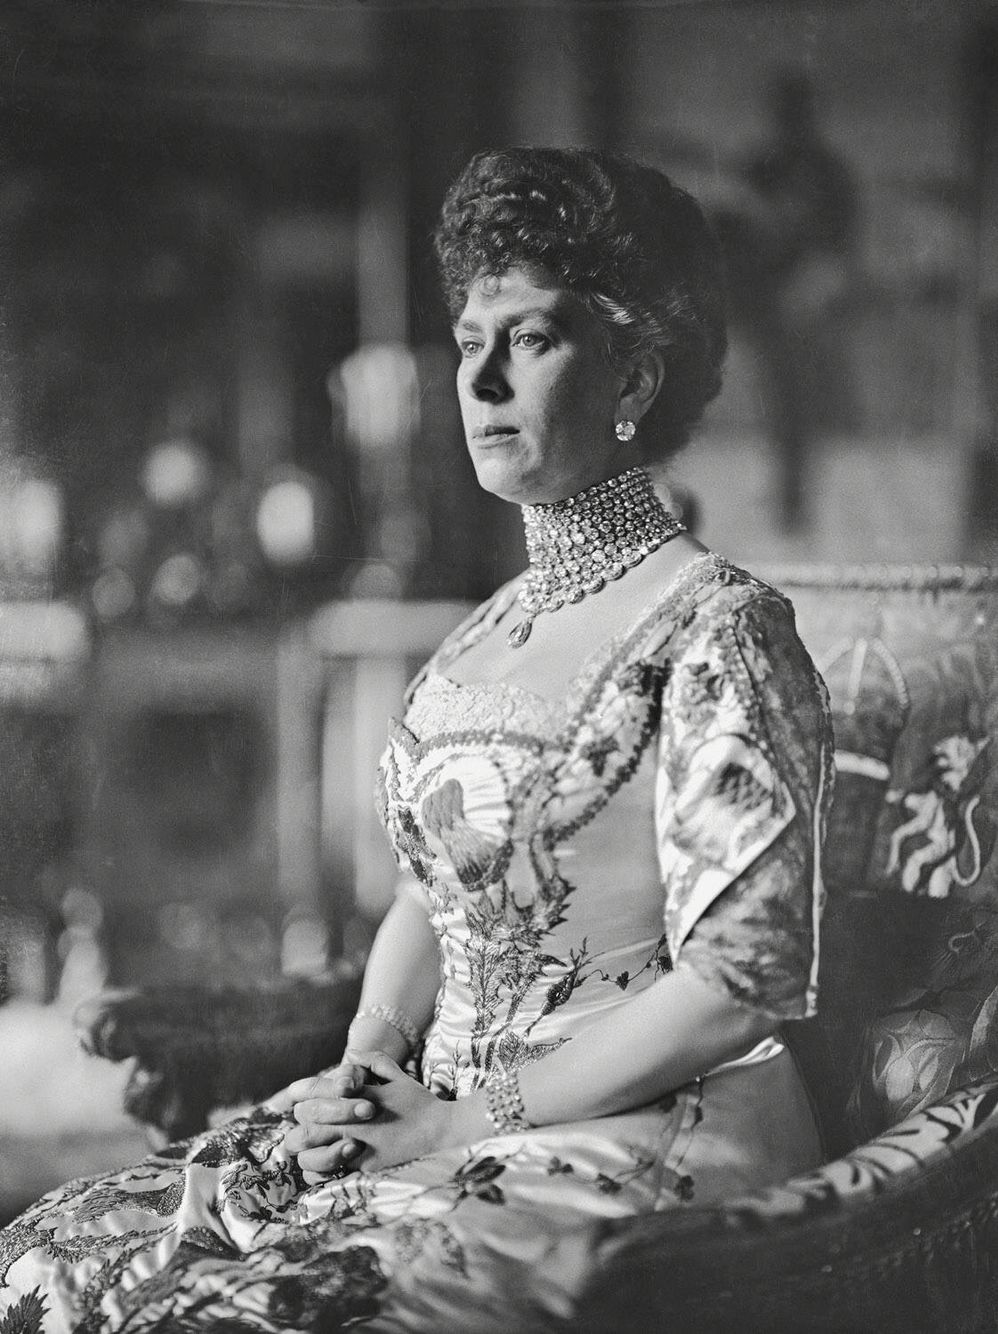 Queen Mary. A good close-up of Queen Mary's coronation gown. She is wearing no bodice ornaments so this photograph may have been taken some time after the event itself. With various adjustments this gown saw service at subsequent state occasions including the Delhi Durbar.